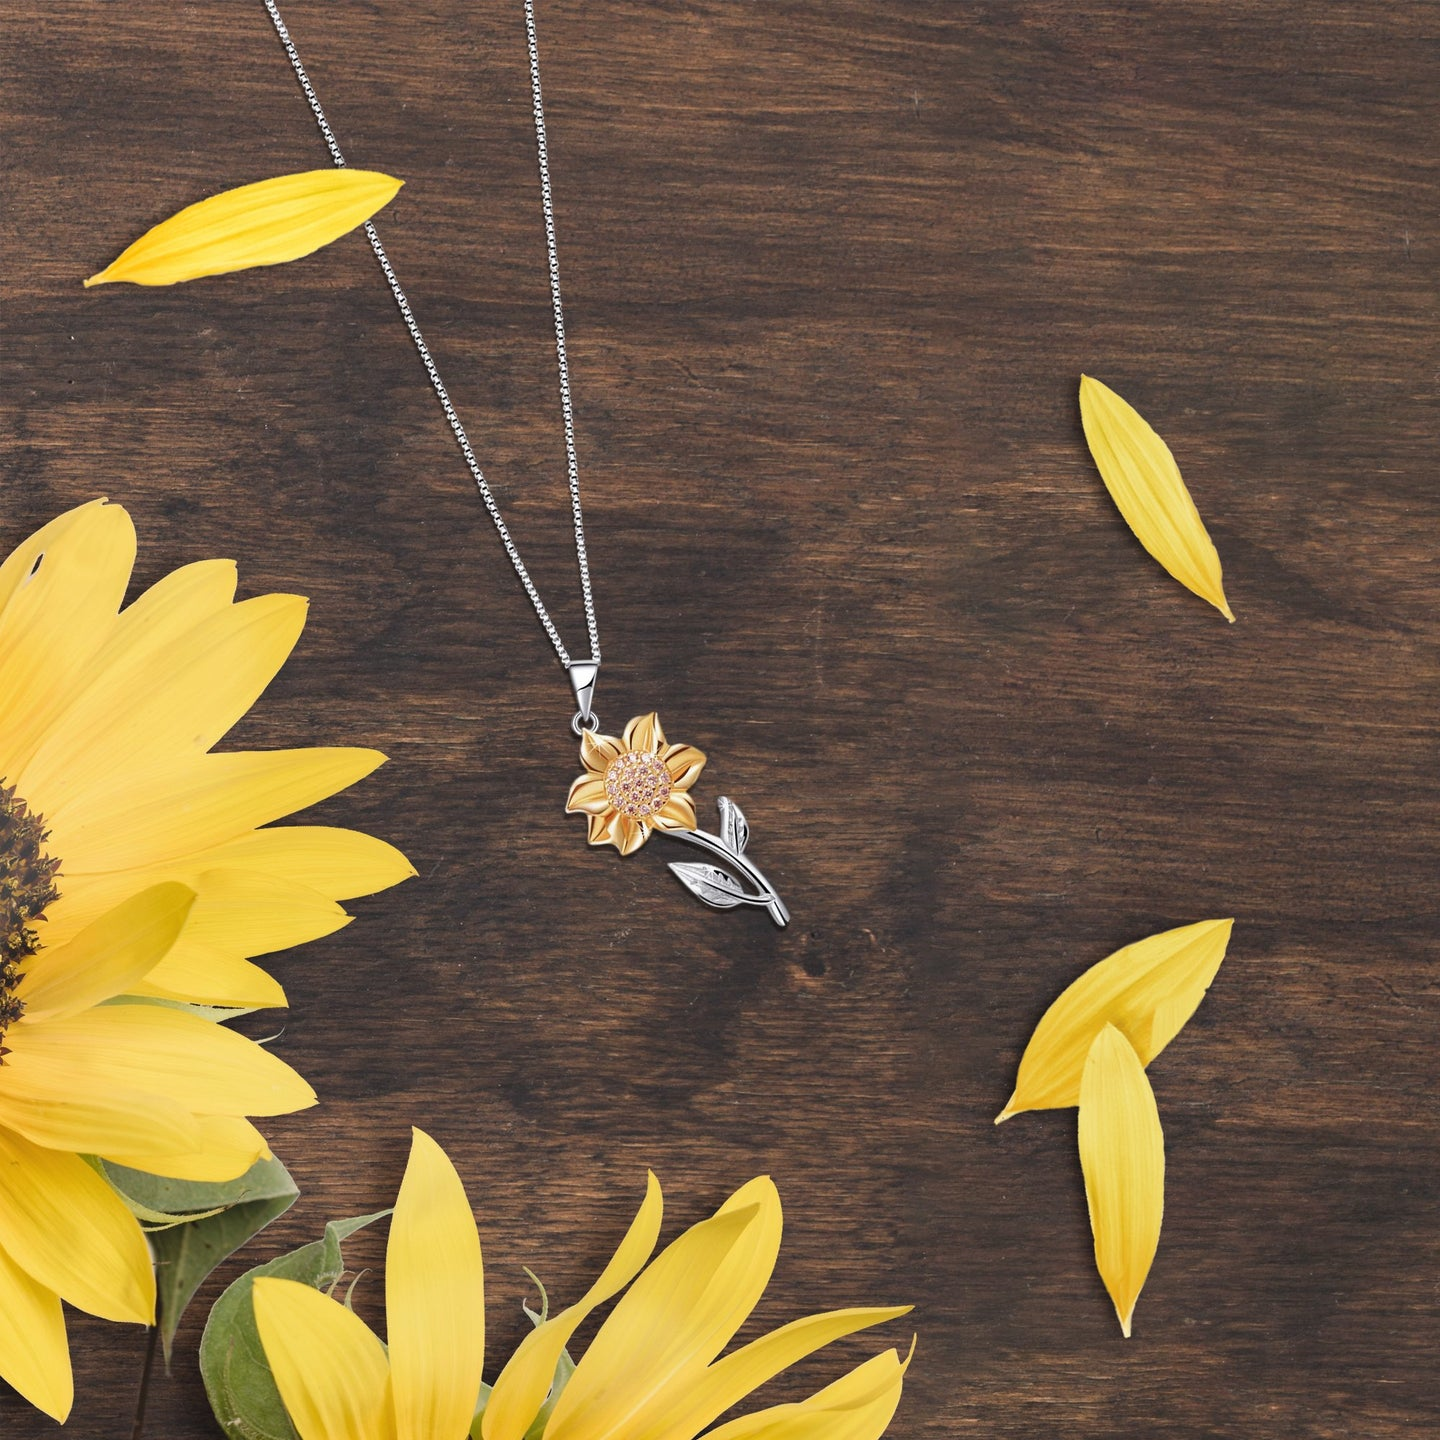 Shiny Sunflower Necklace